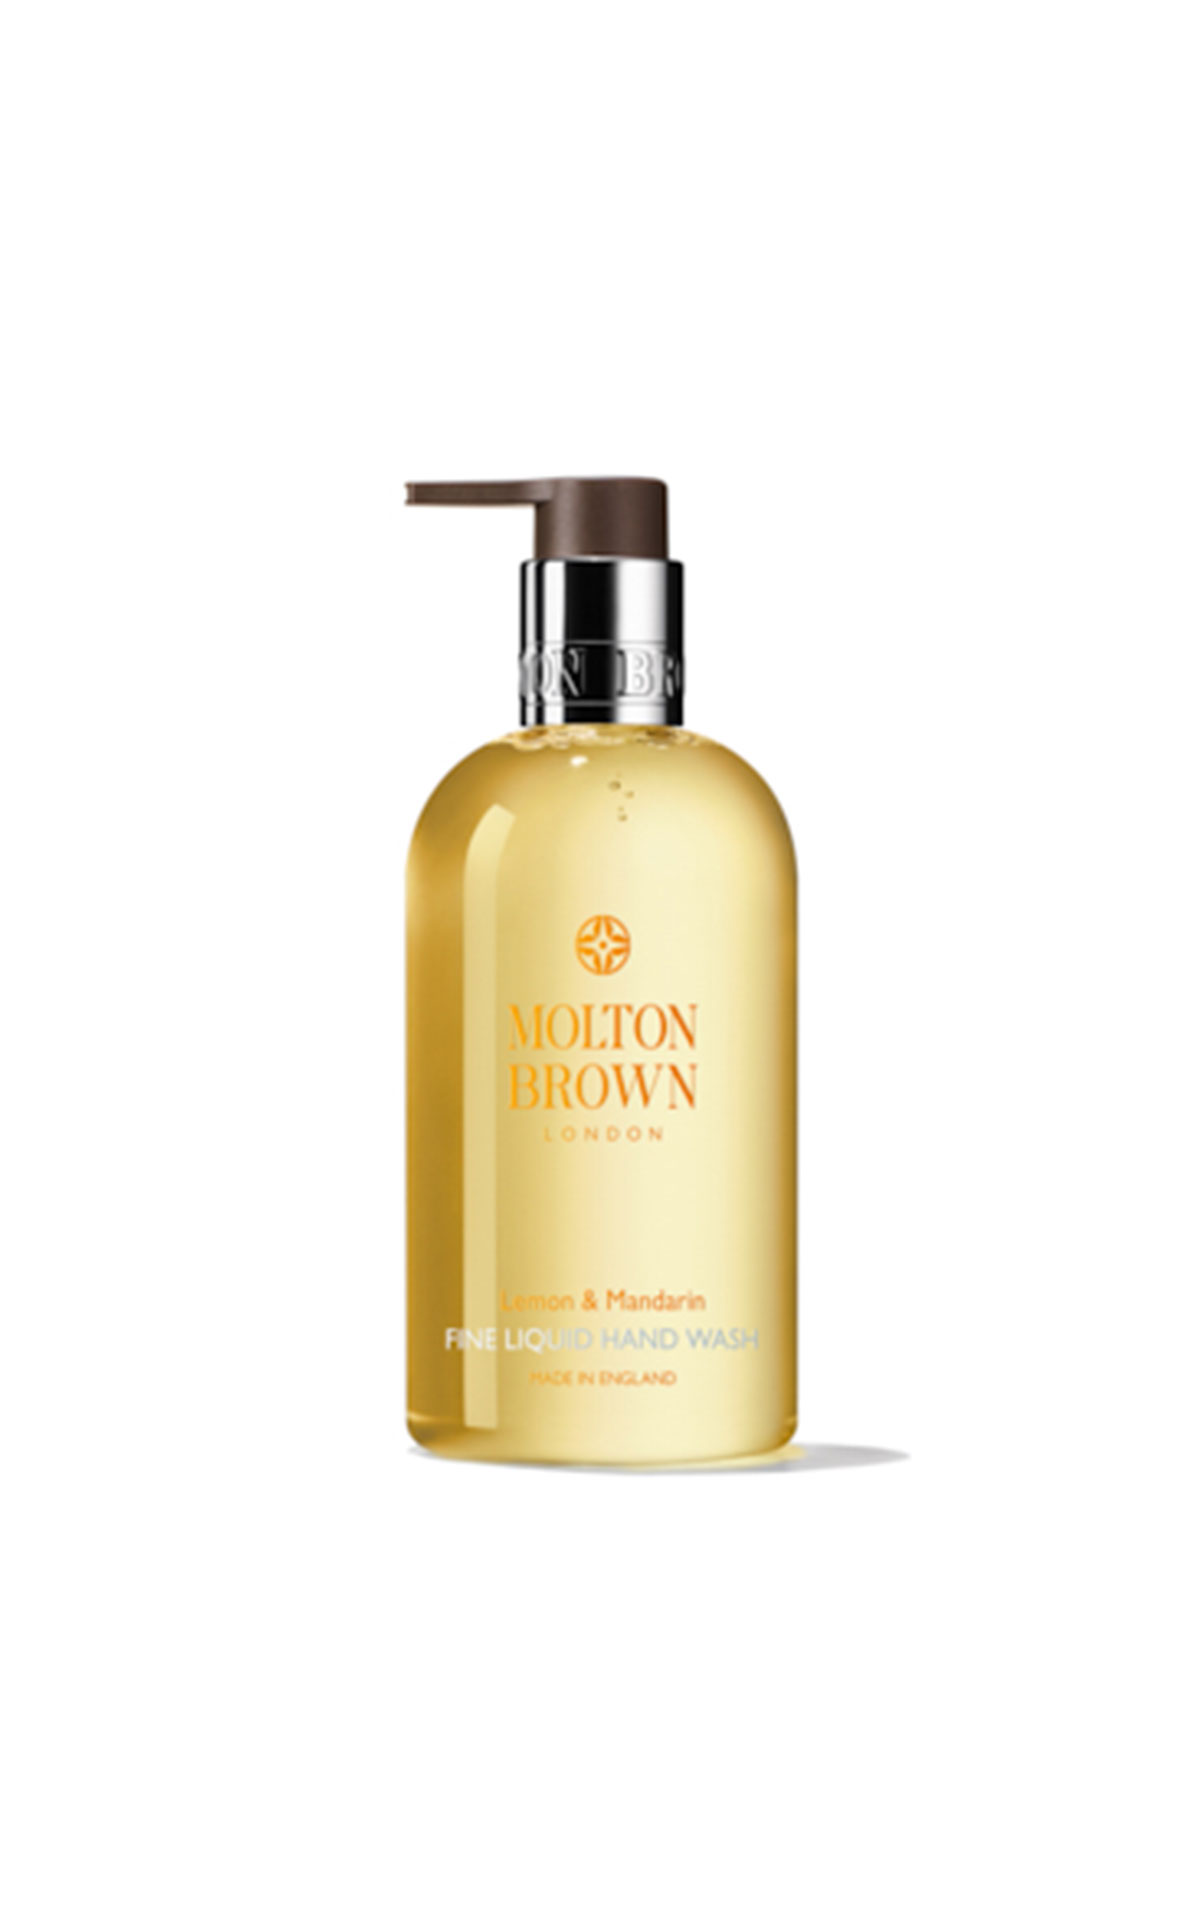 Molton Brown Lemon and mandarin handwash 300ml from Bicester Village